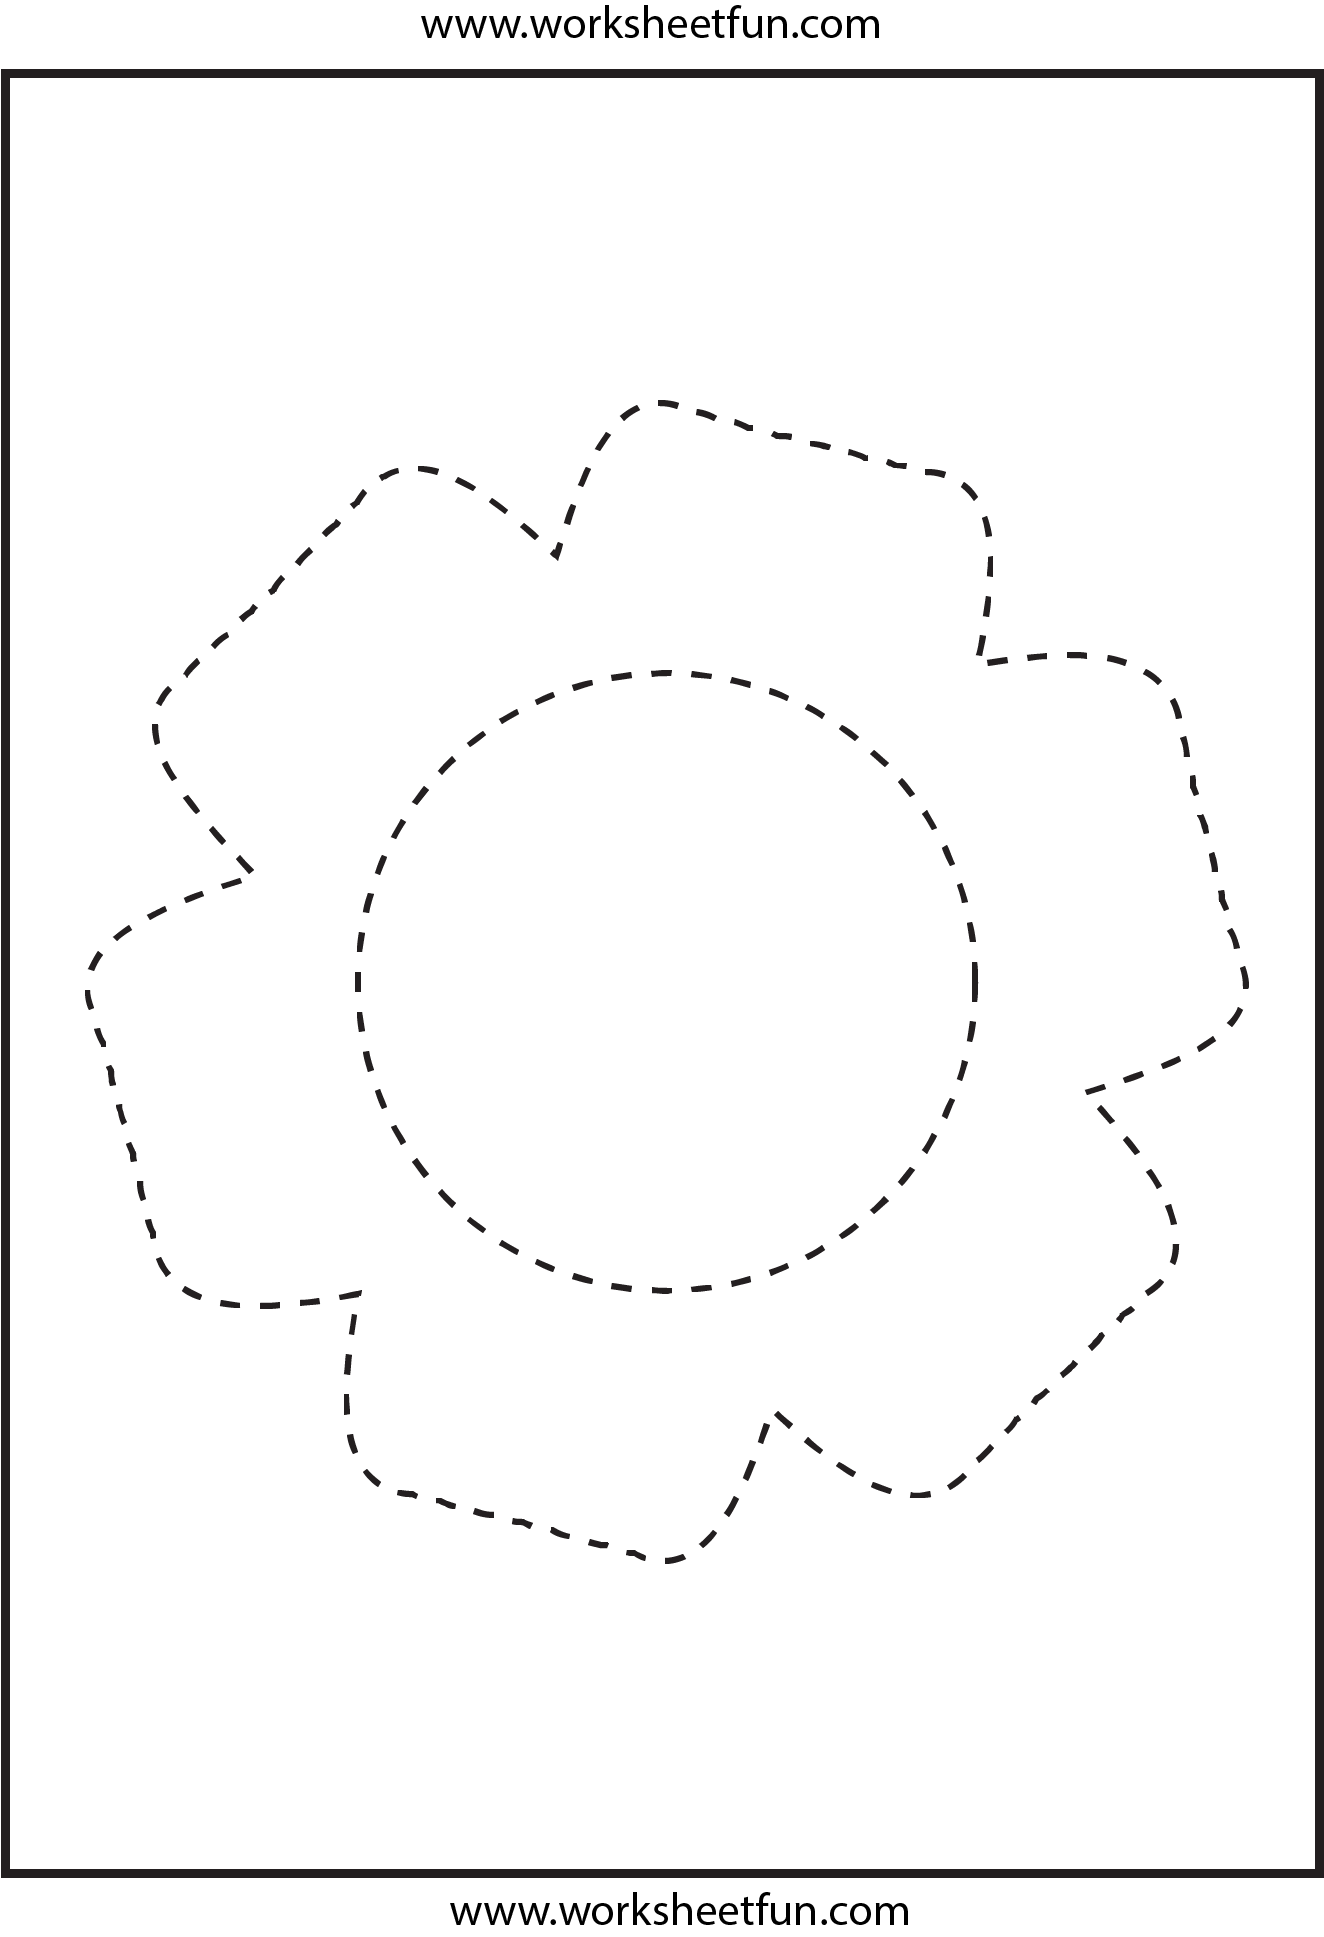 Picture Tracing Flower 1 Worksheet Free Printable Worksheets Worksheetfun